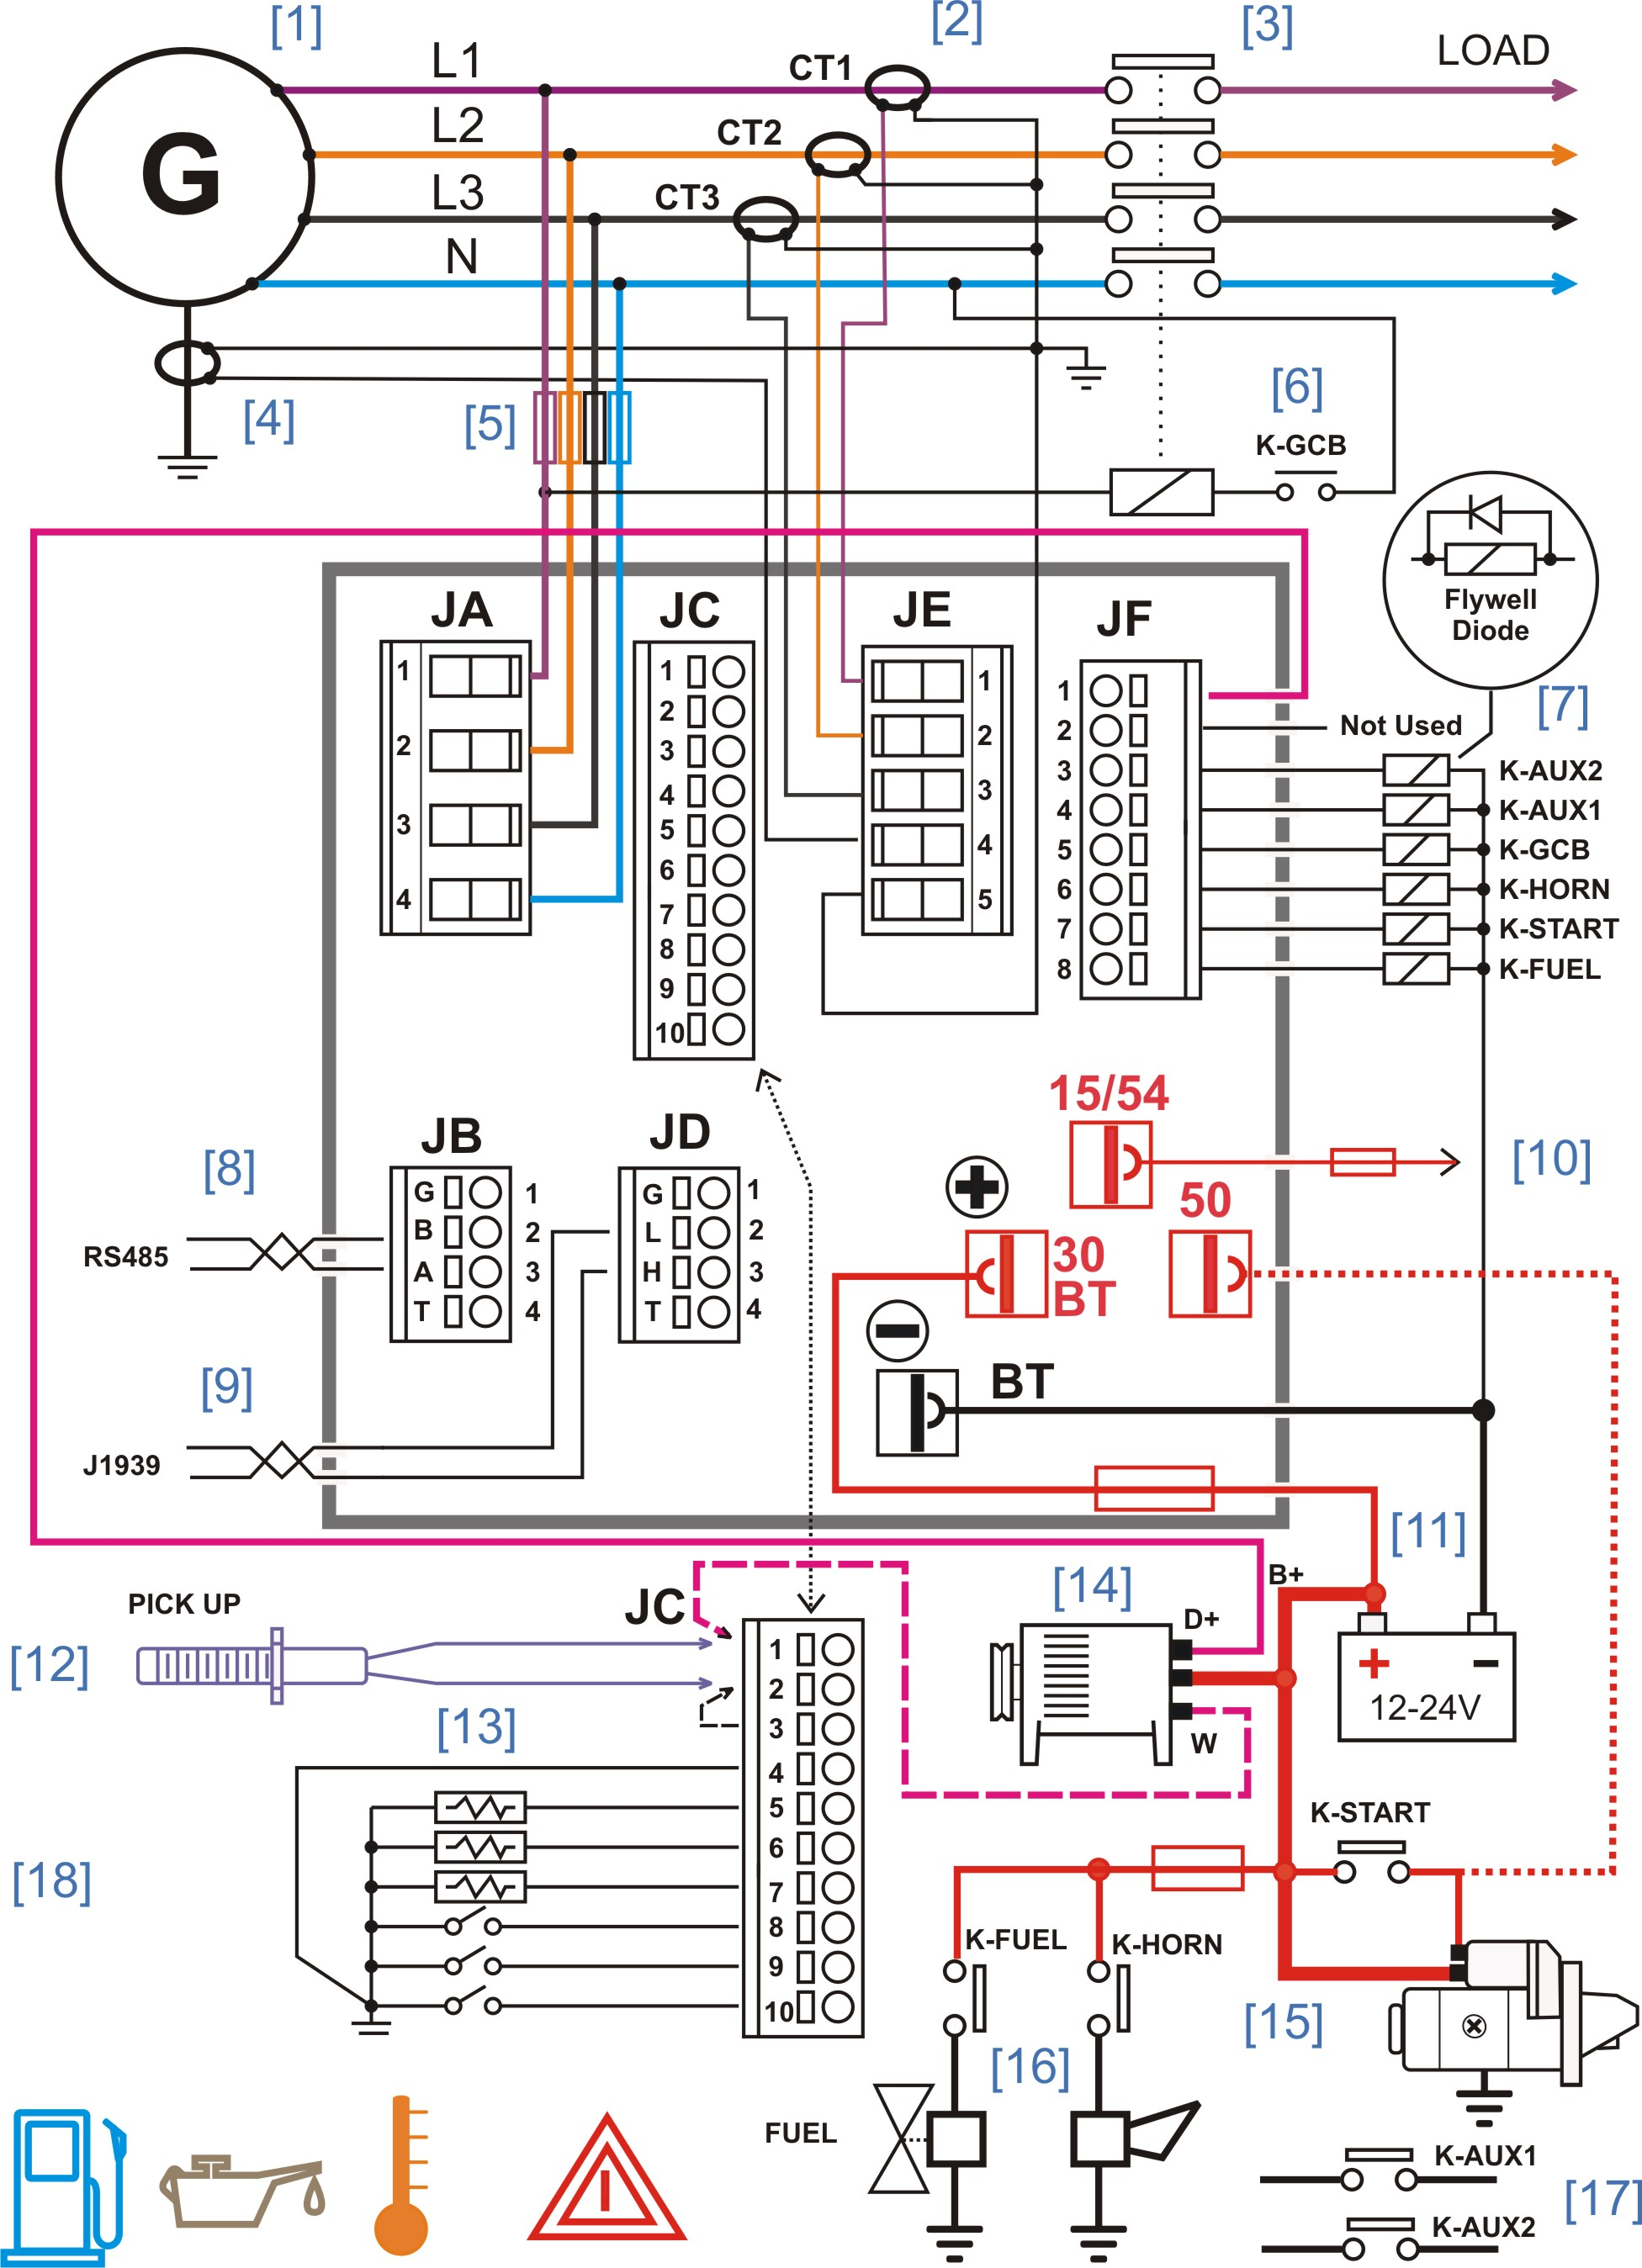 24v generator wiring diagram detailed schematics diagram rh lelandlutheran com